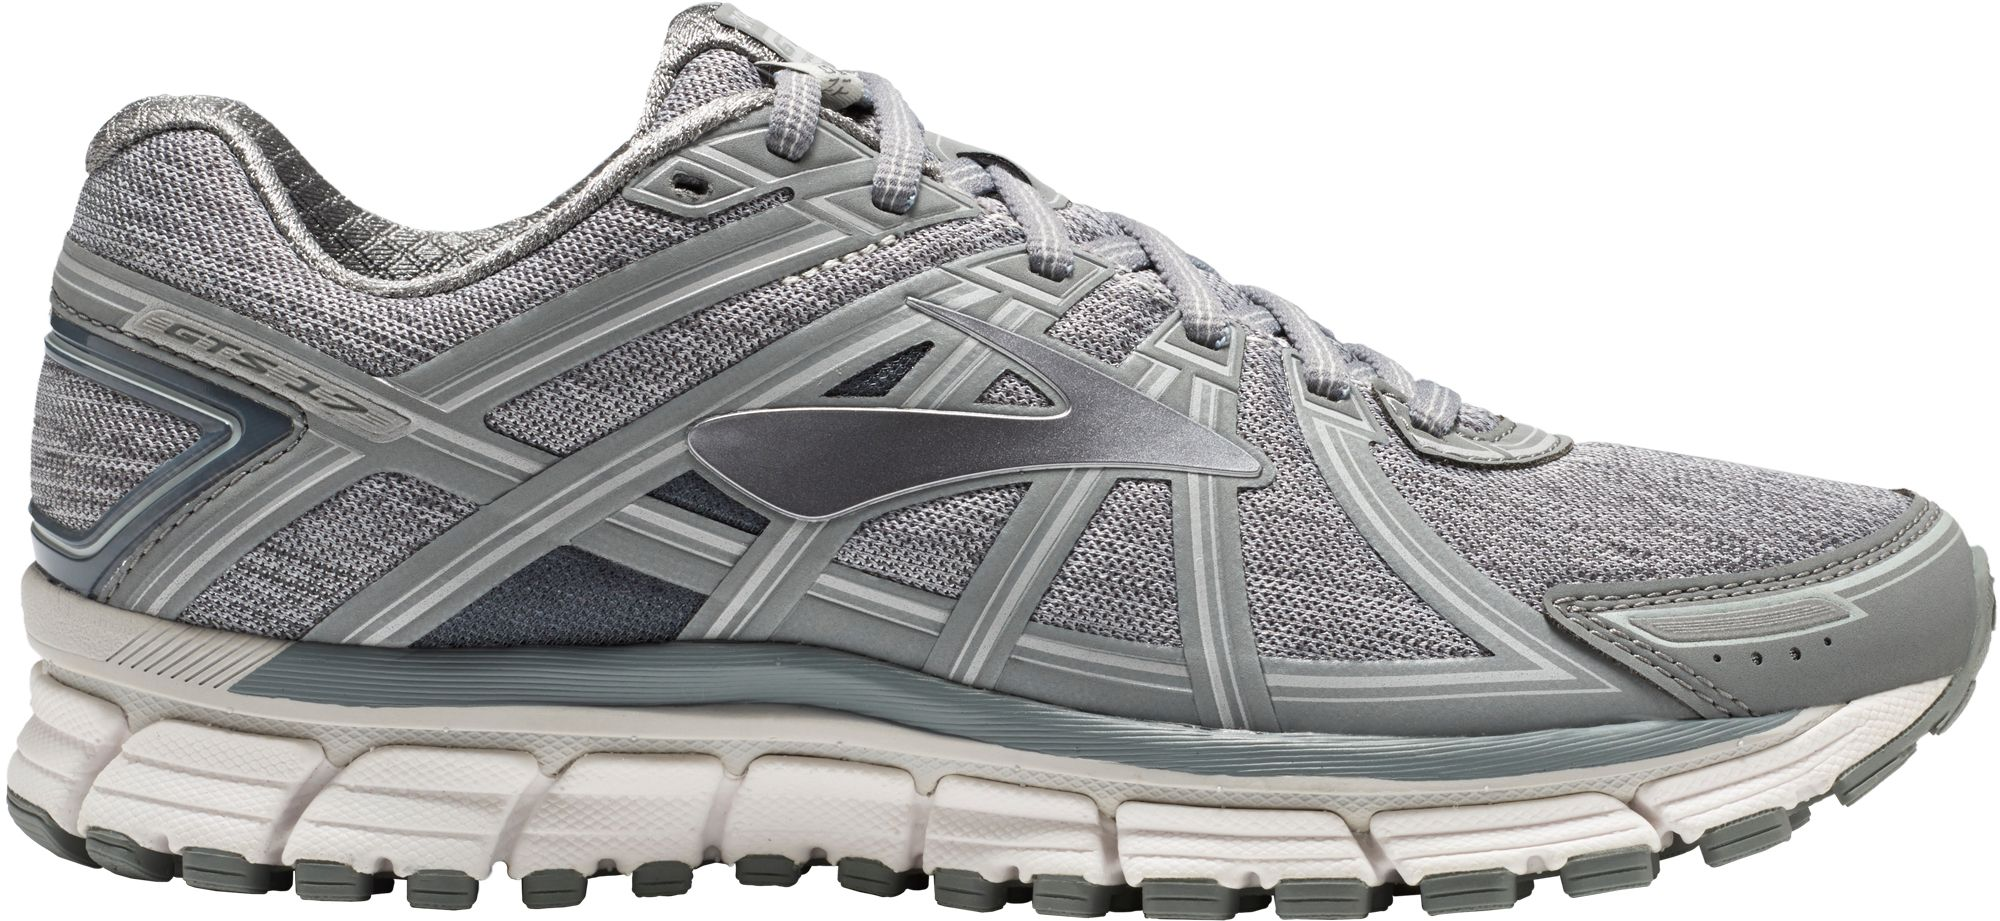 5b7b3ba7cc3 brooks womens adrenaline gts 17 running shoes